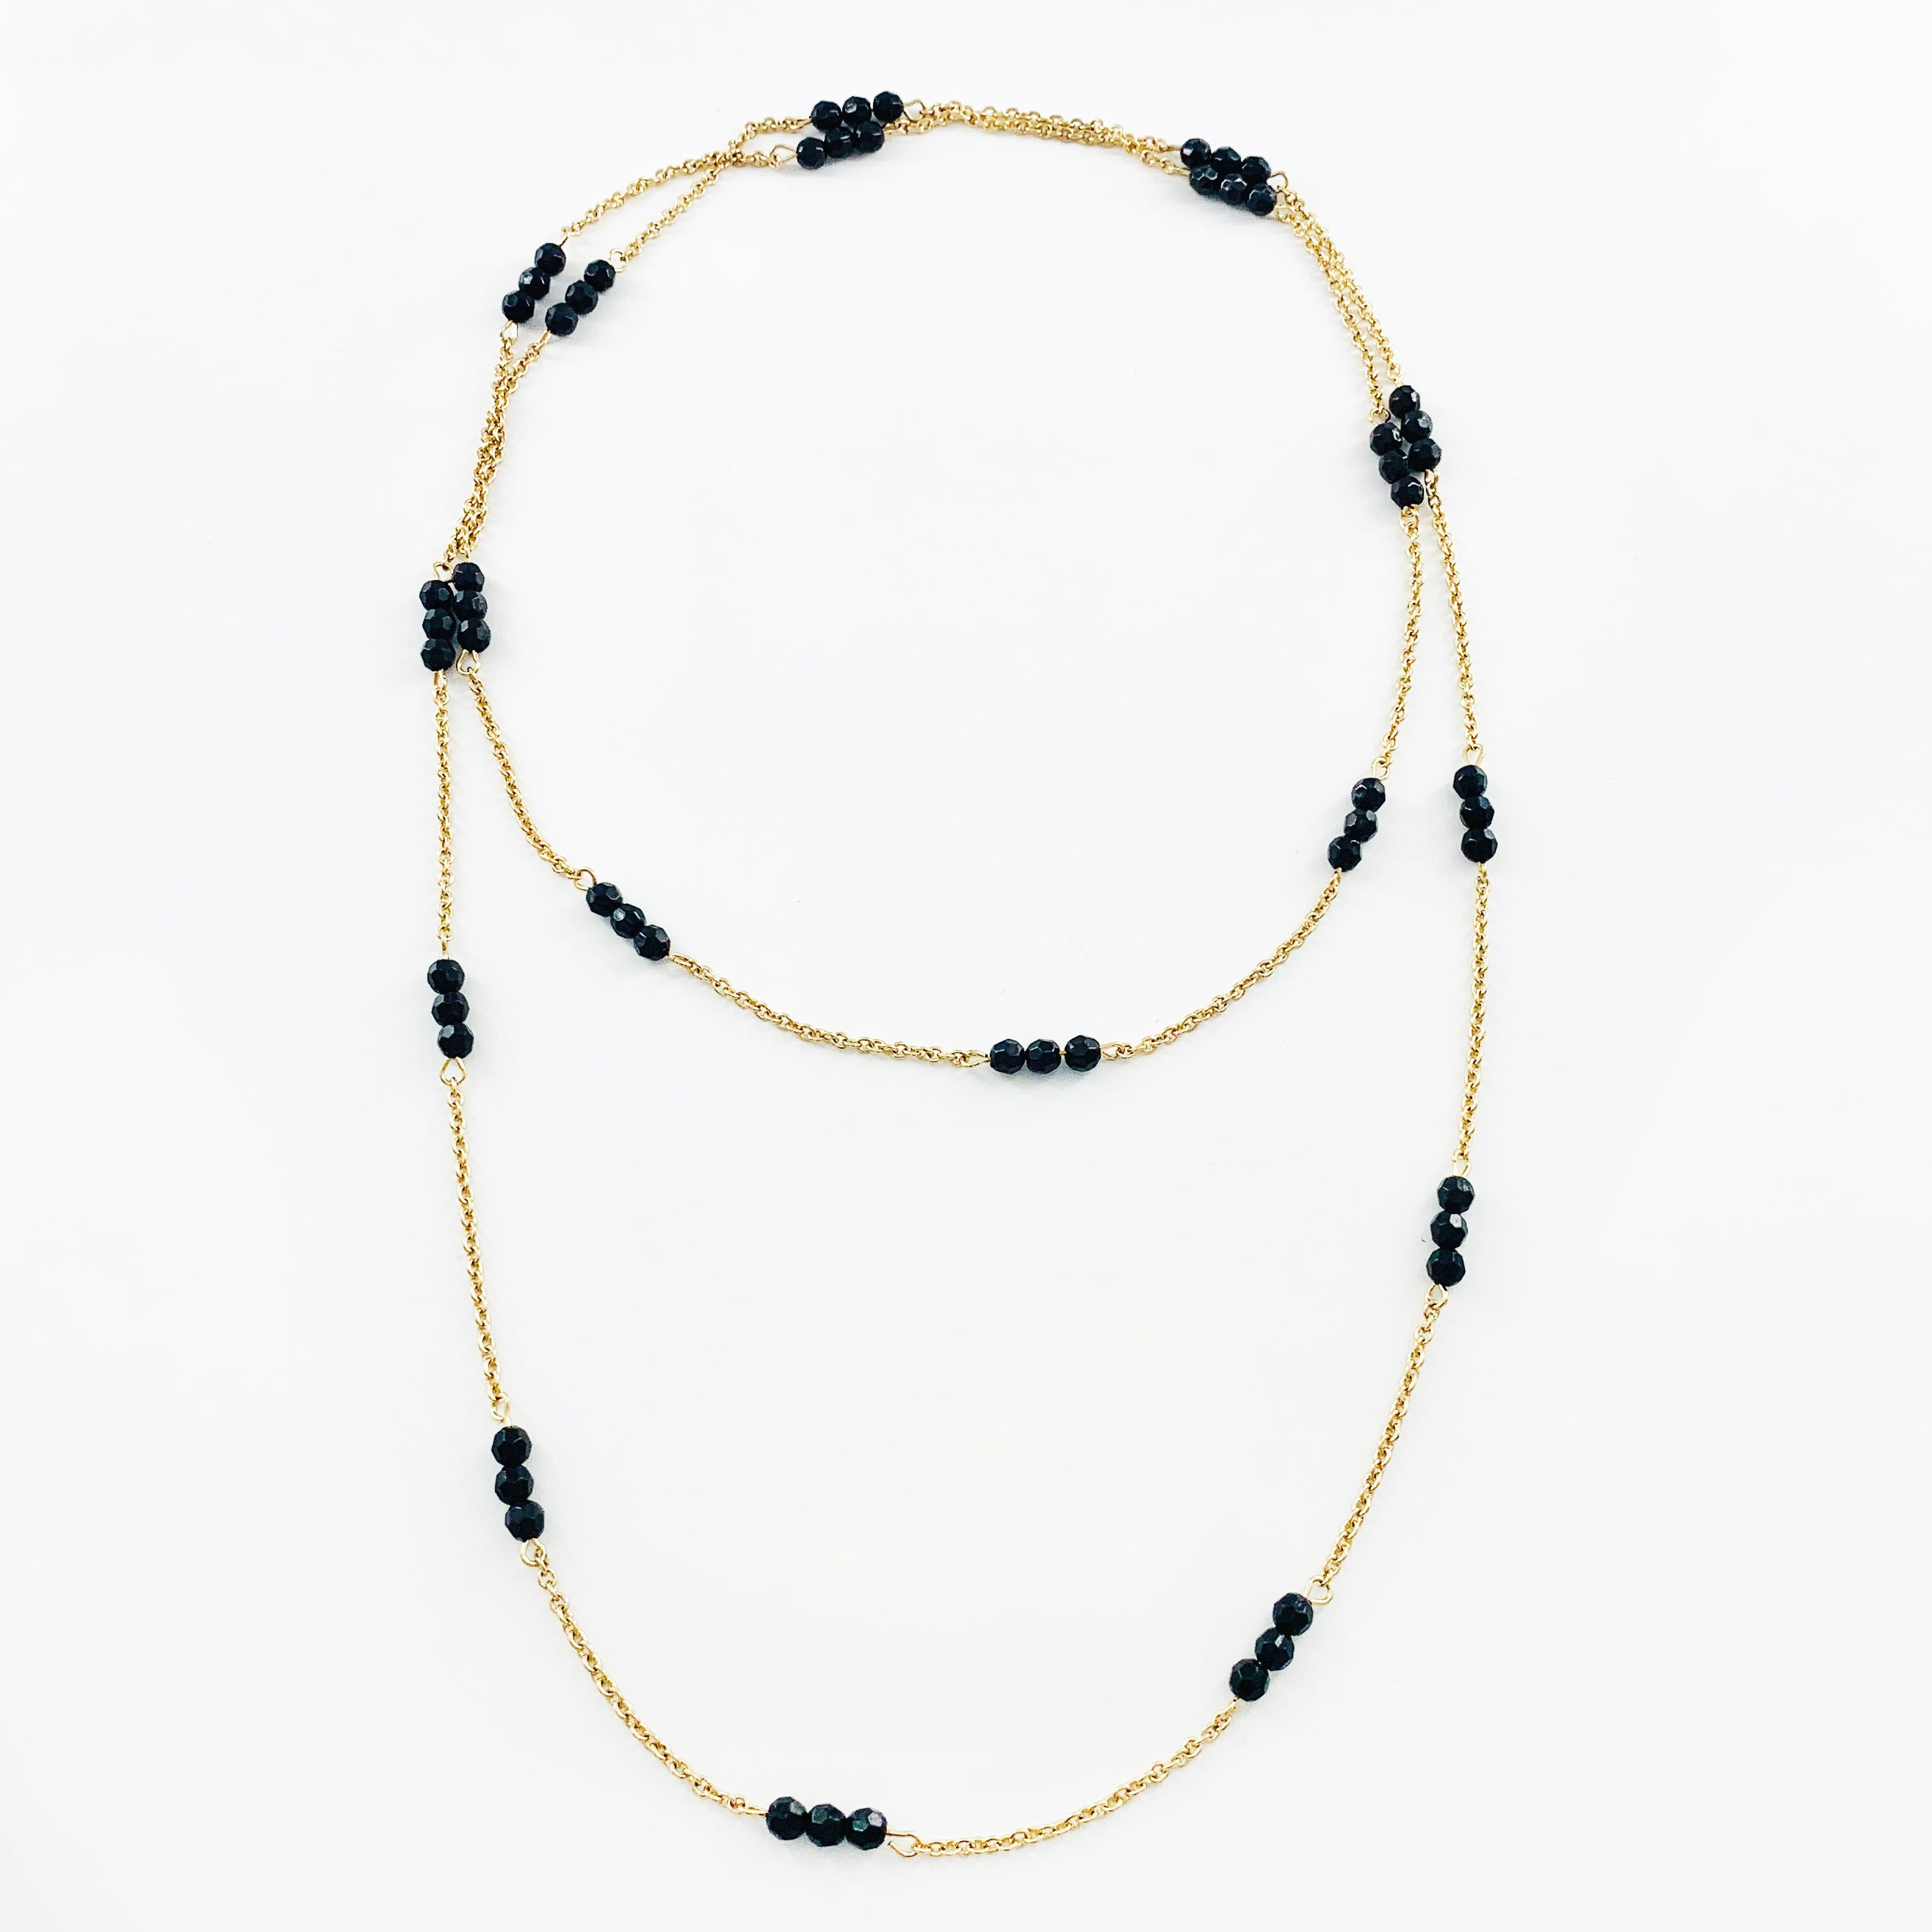 Black Facet Beads with Gold Chain Wrap Necklace